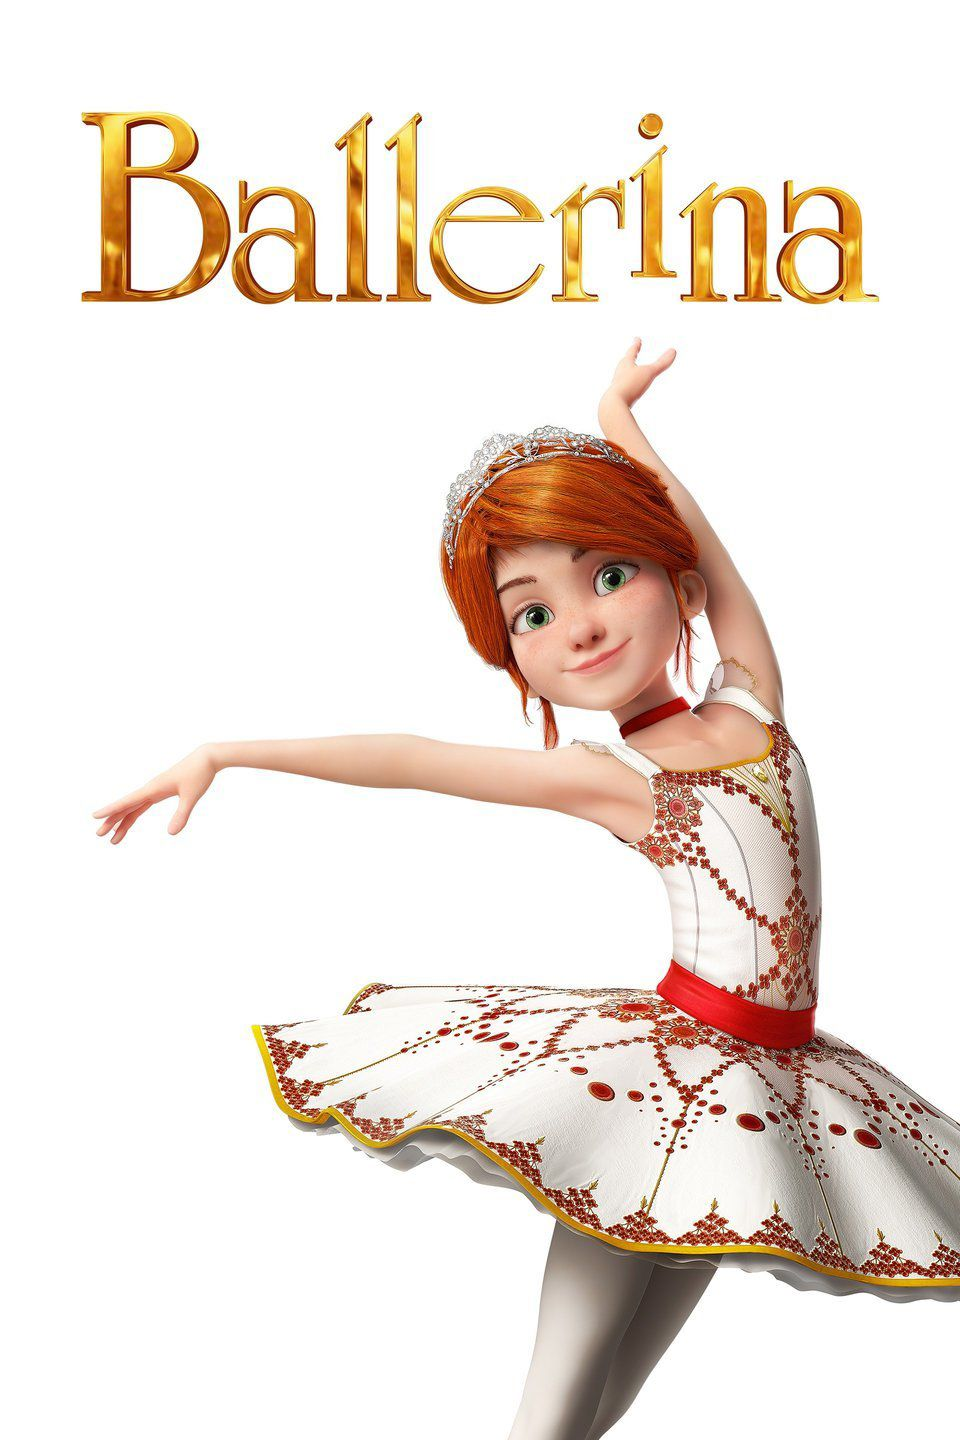 Pin by Karen Bell on Animated Movies Ballerina images